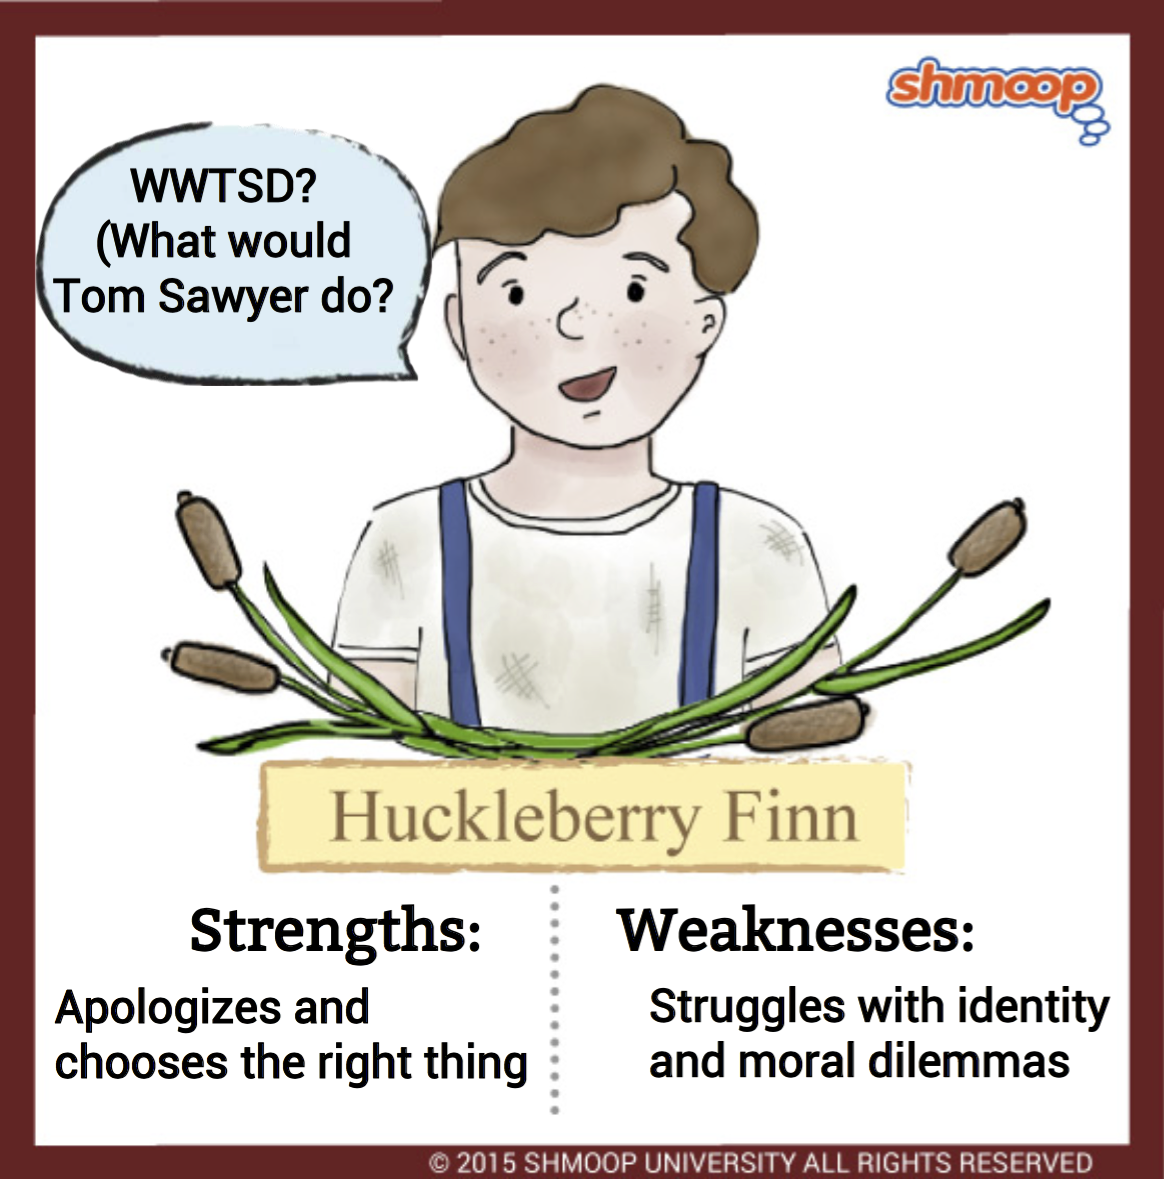 pap huck finn essay So today we'll look briefly at the creator of huck finn, samuel  but by the age of  15, clemens was writing funny articles and essays for the  but all that changes  when his father, pap, kidnaps him, and locks him in a shack.